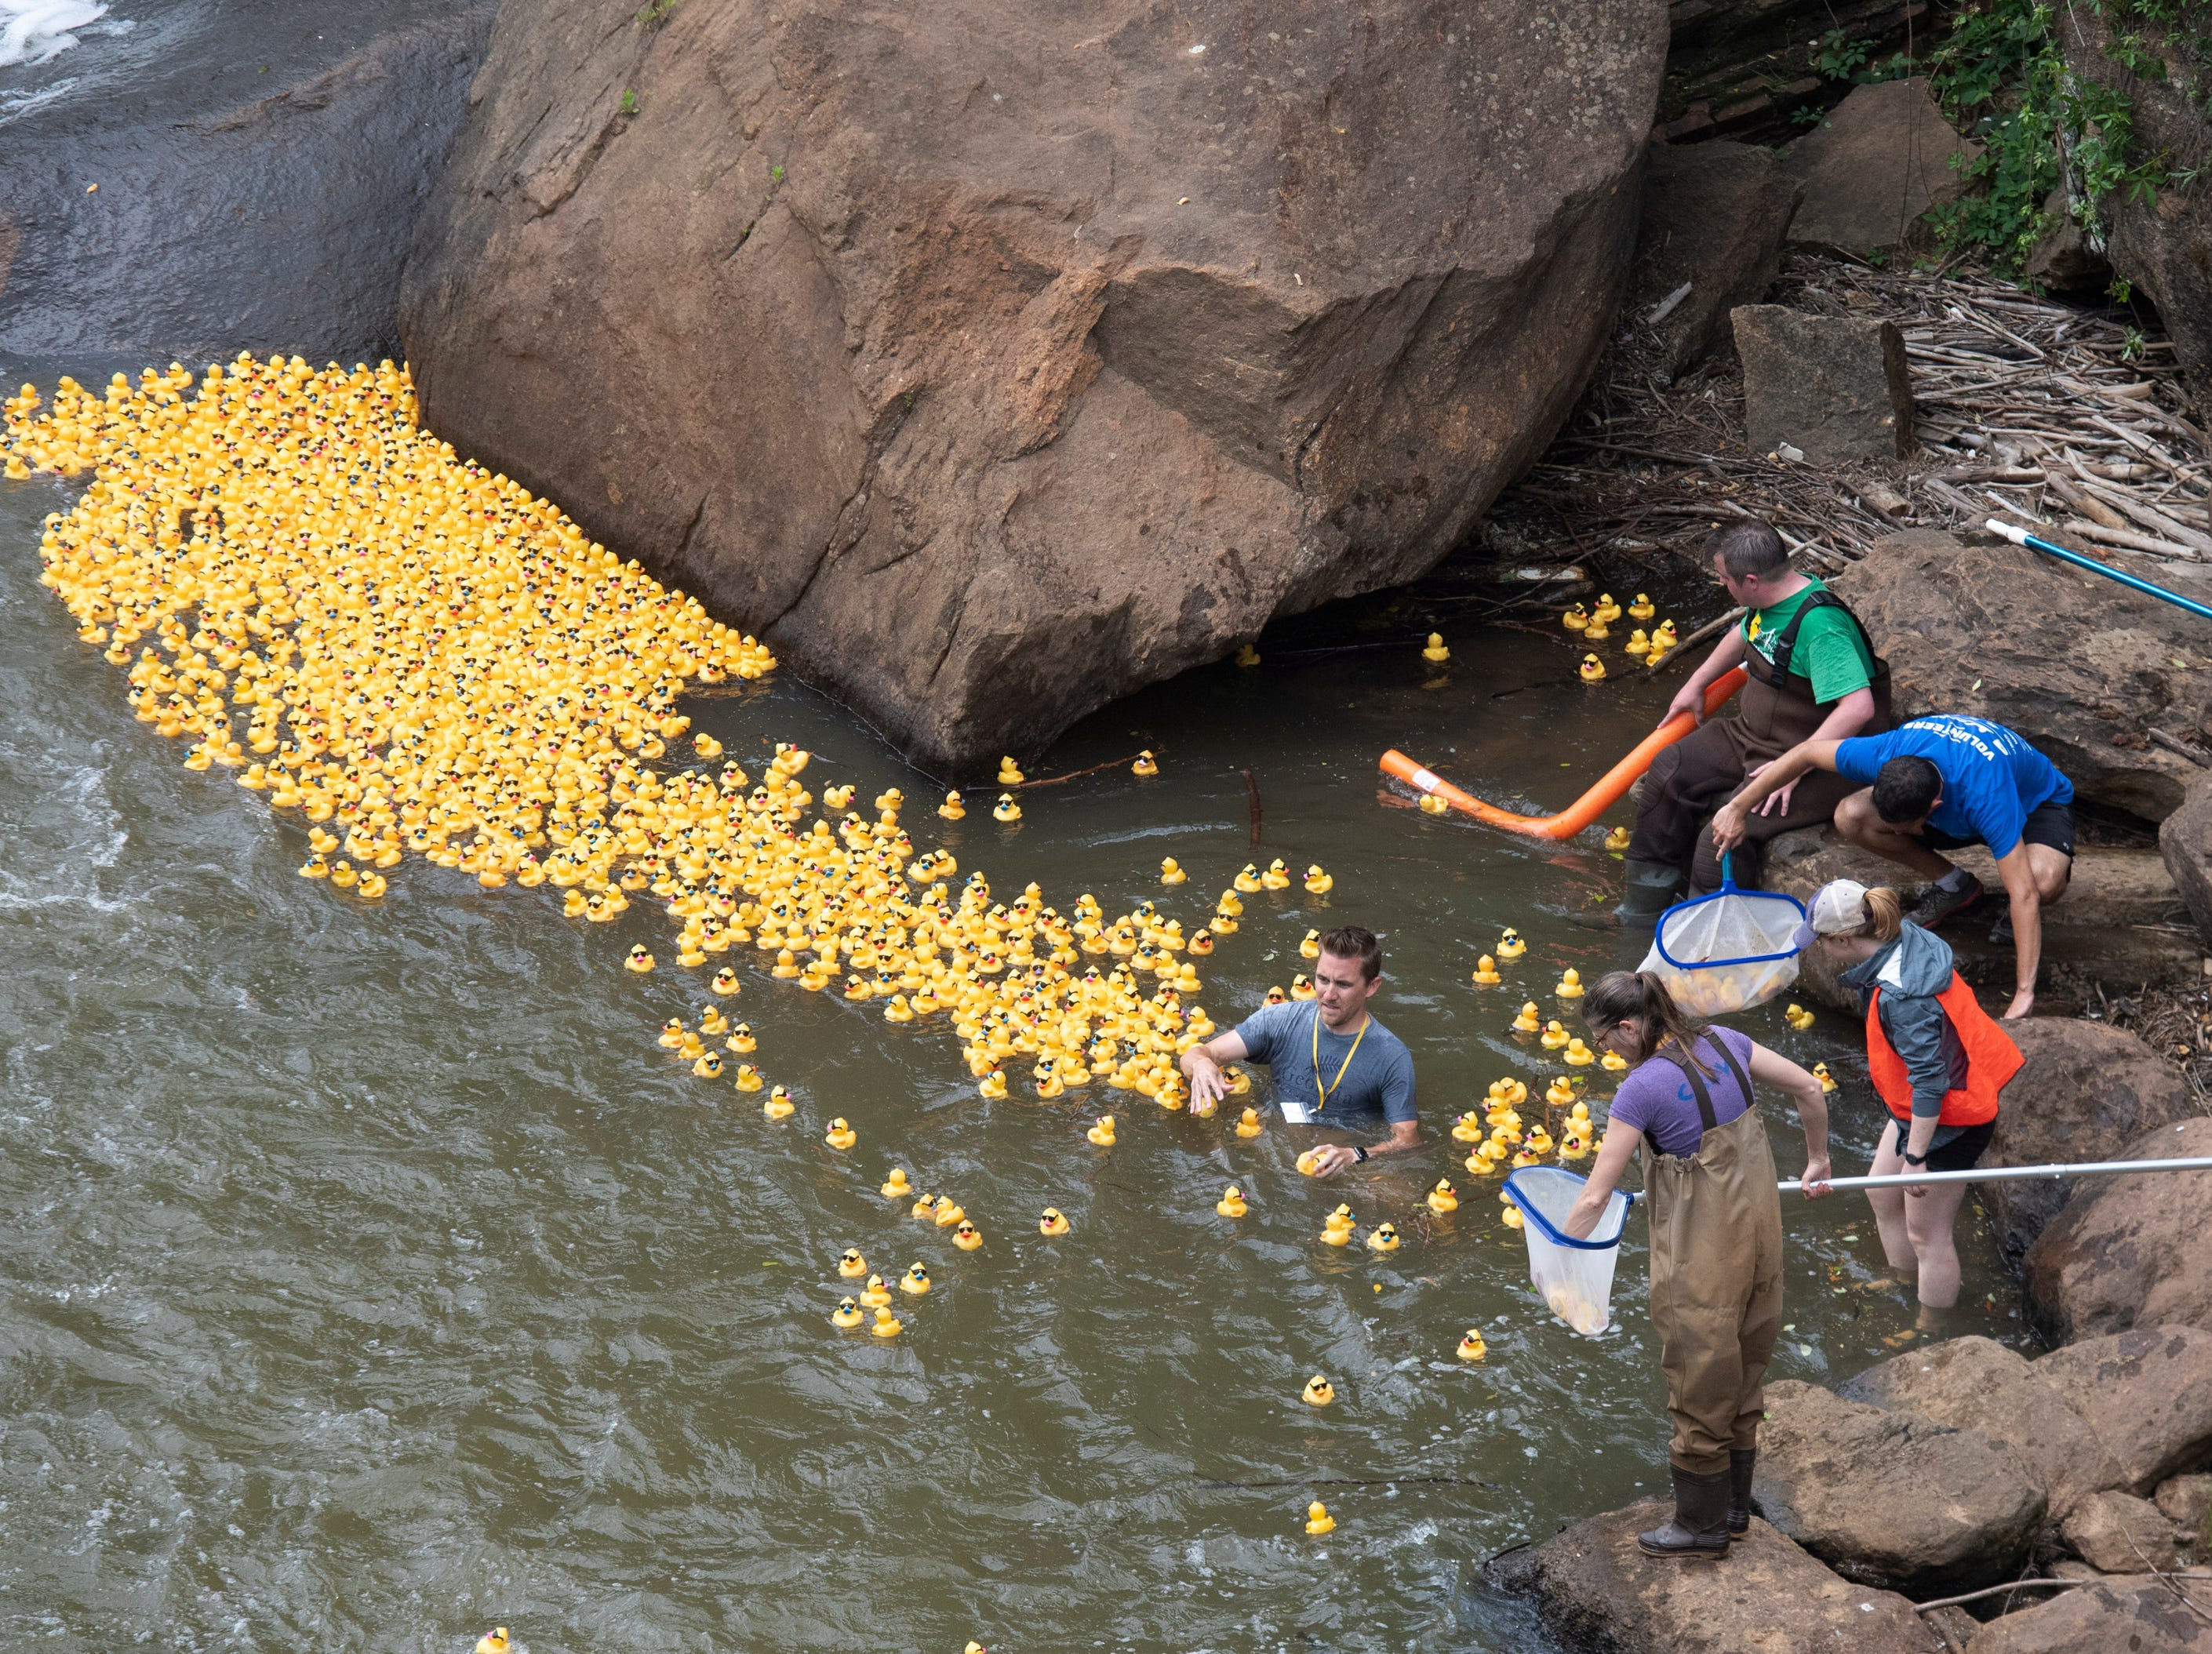 The 2019 Reedy River Duck Derby in Falls Park on the Reedy Saturday, May 4, 2019.